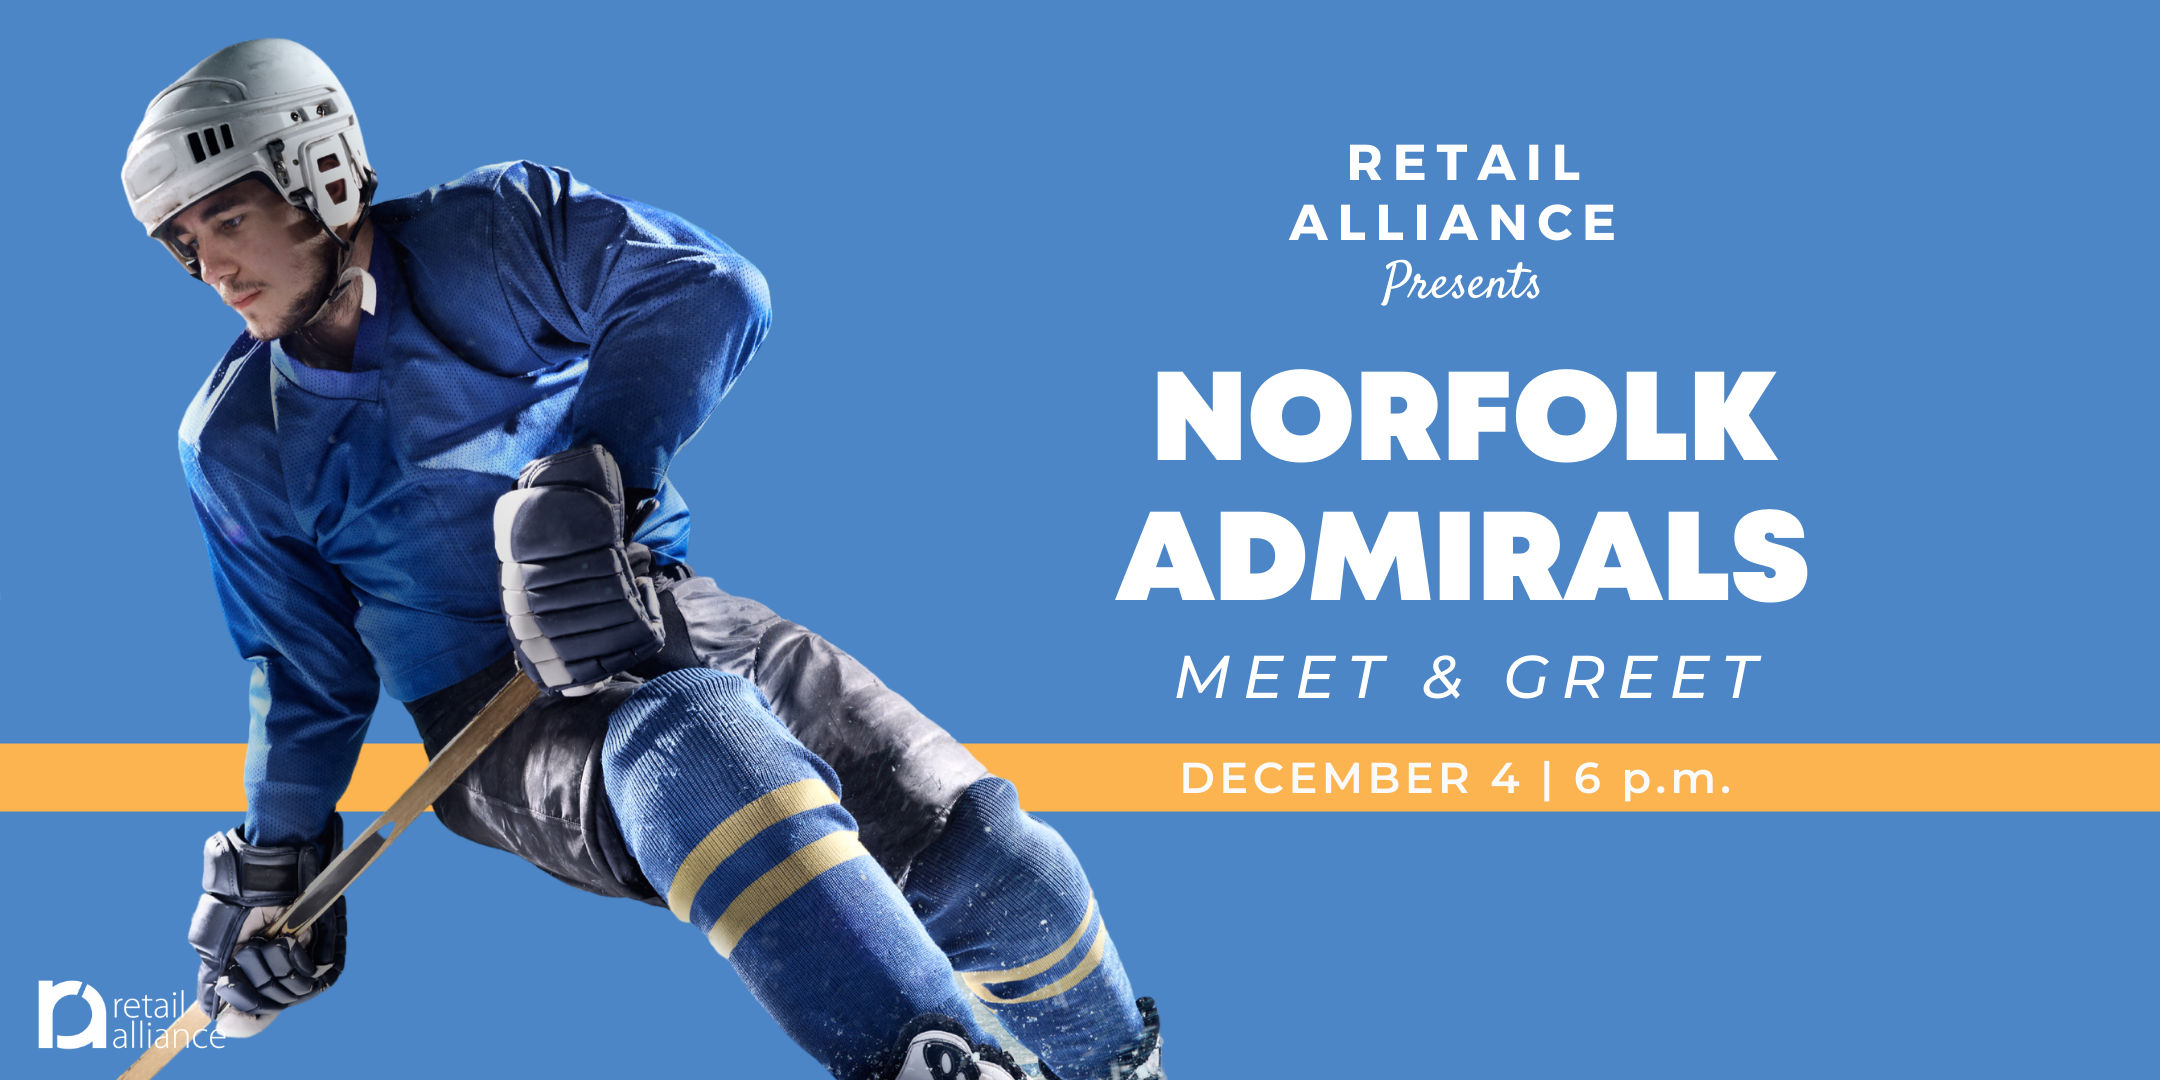 Meet and Greet with the Norfolk Admirals